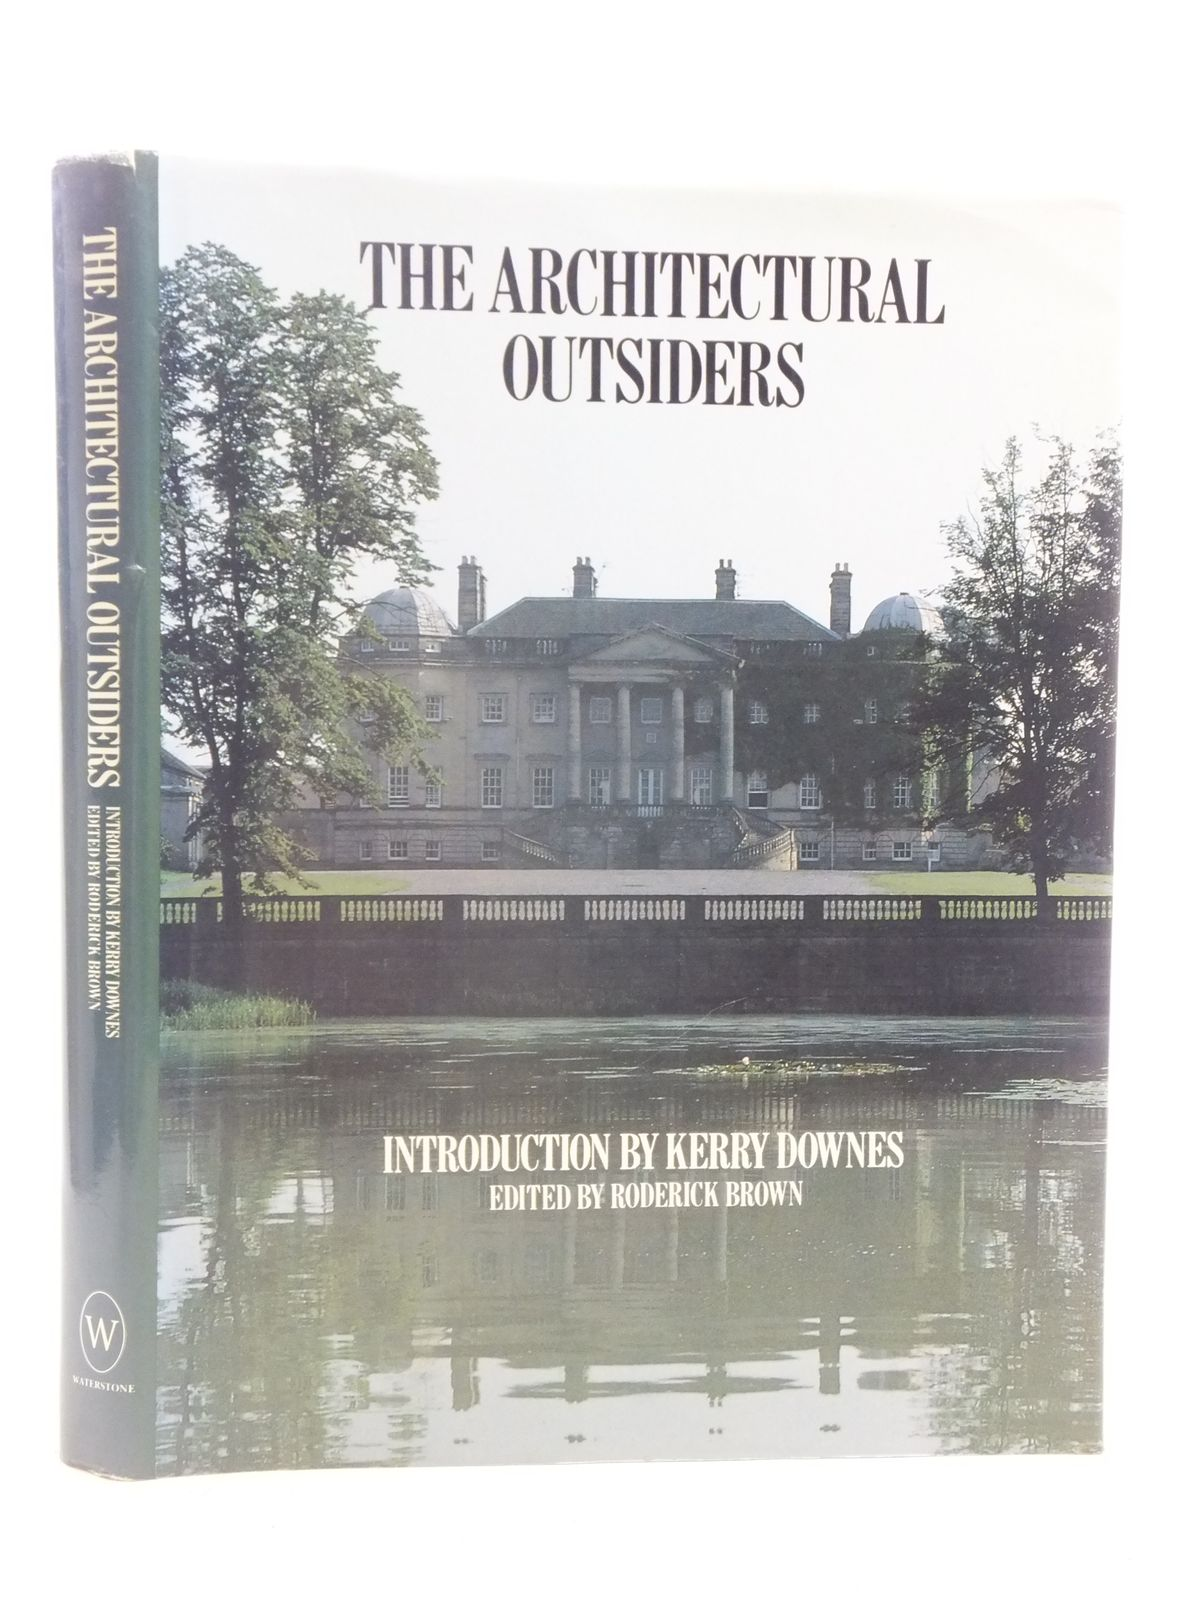 Photo of THE ARCHITECTURAL OUTSIDERS written by Downes, Kerry Brown, Roderick published by Waterstone (STOCK CODE: 2114924)  for sale by Stella & Rose's Books